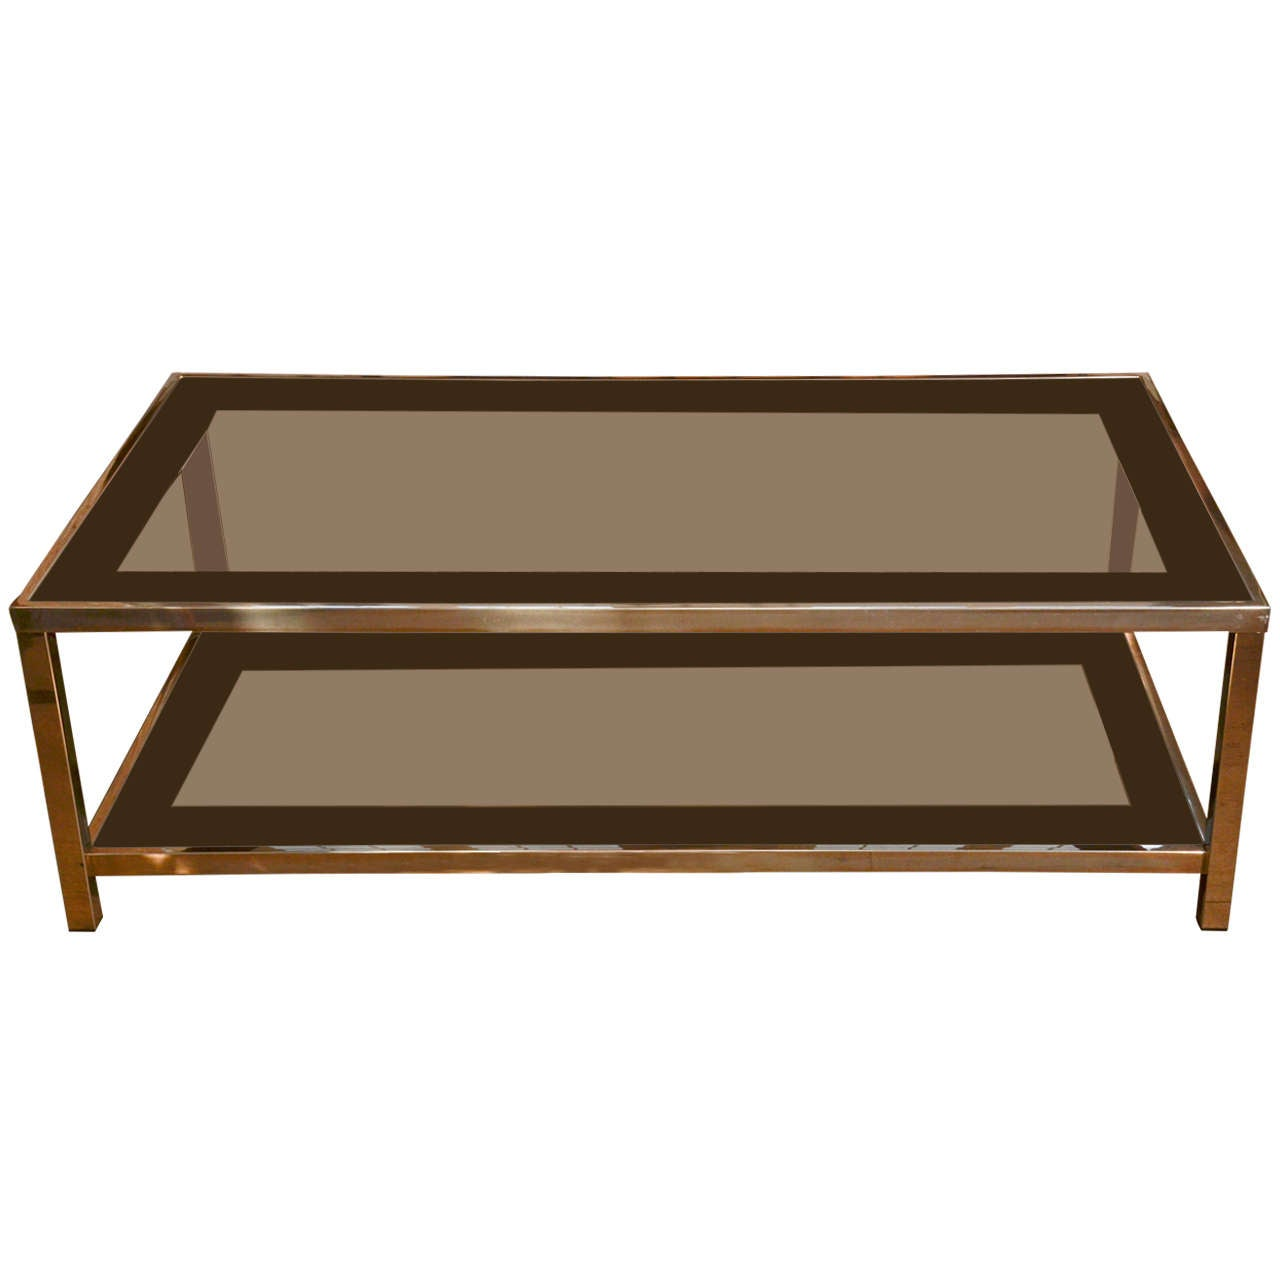 Gold Plated Coffee Table: Gold Plated Coffee Table In The Style Of Willy Rizzo At